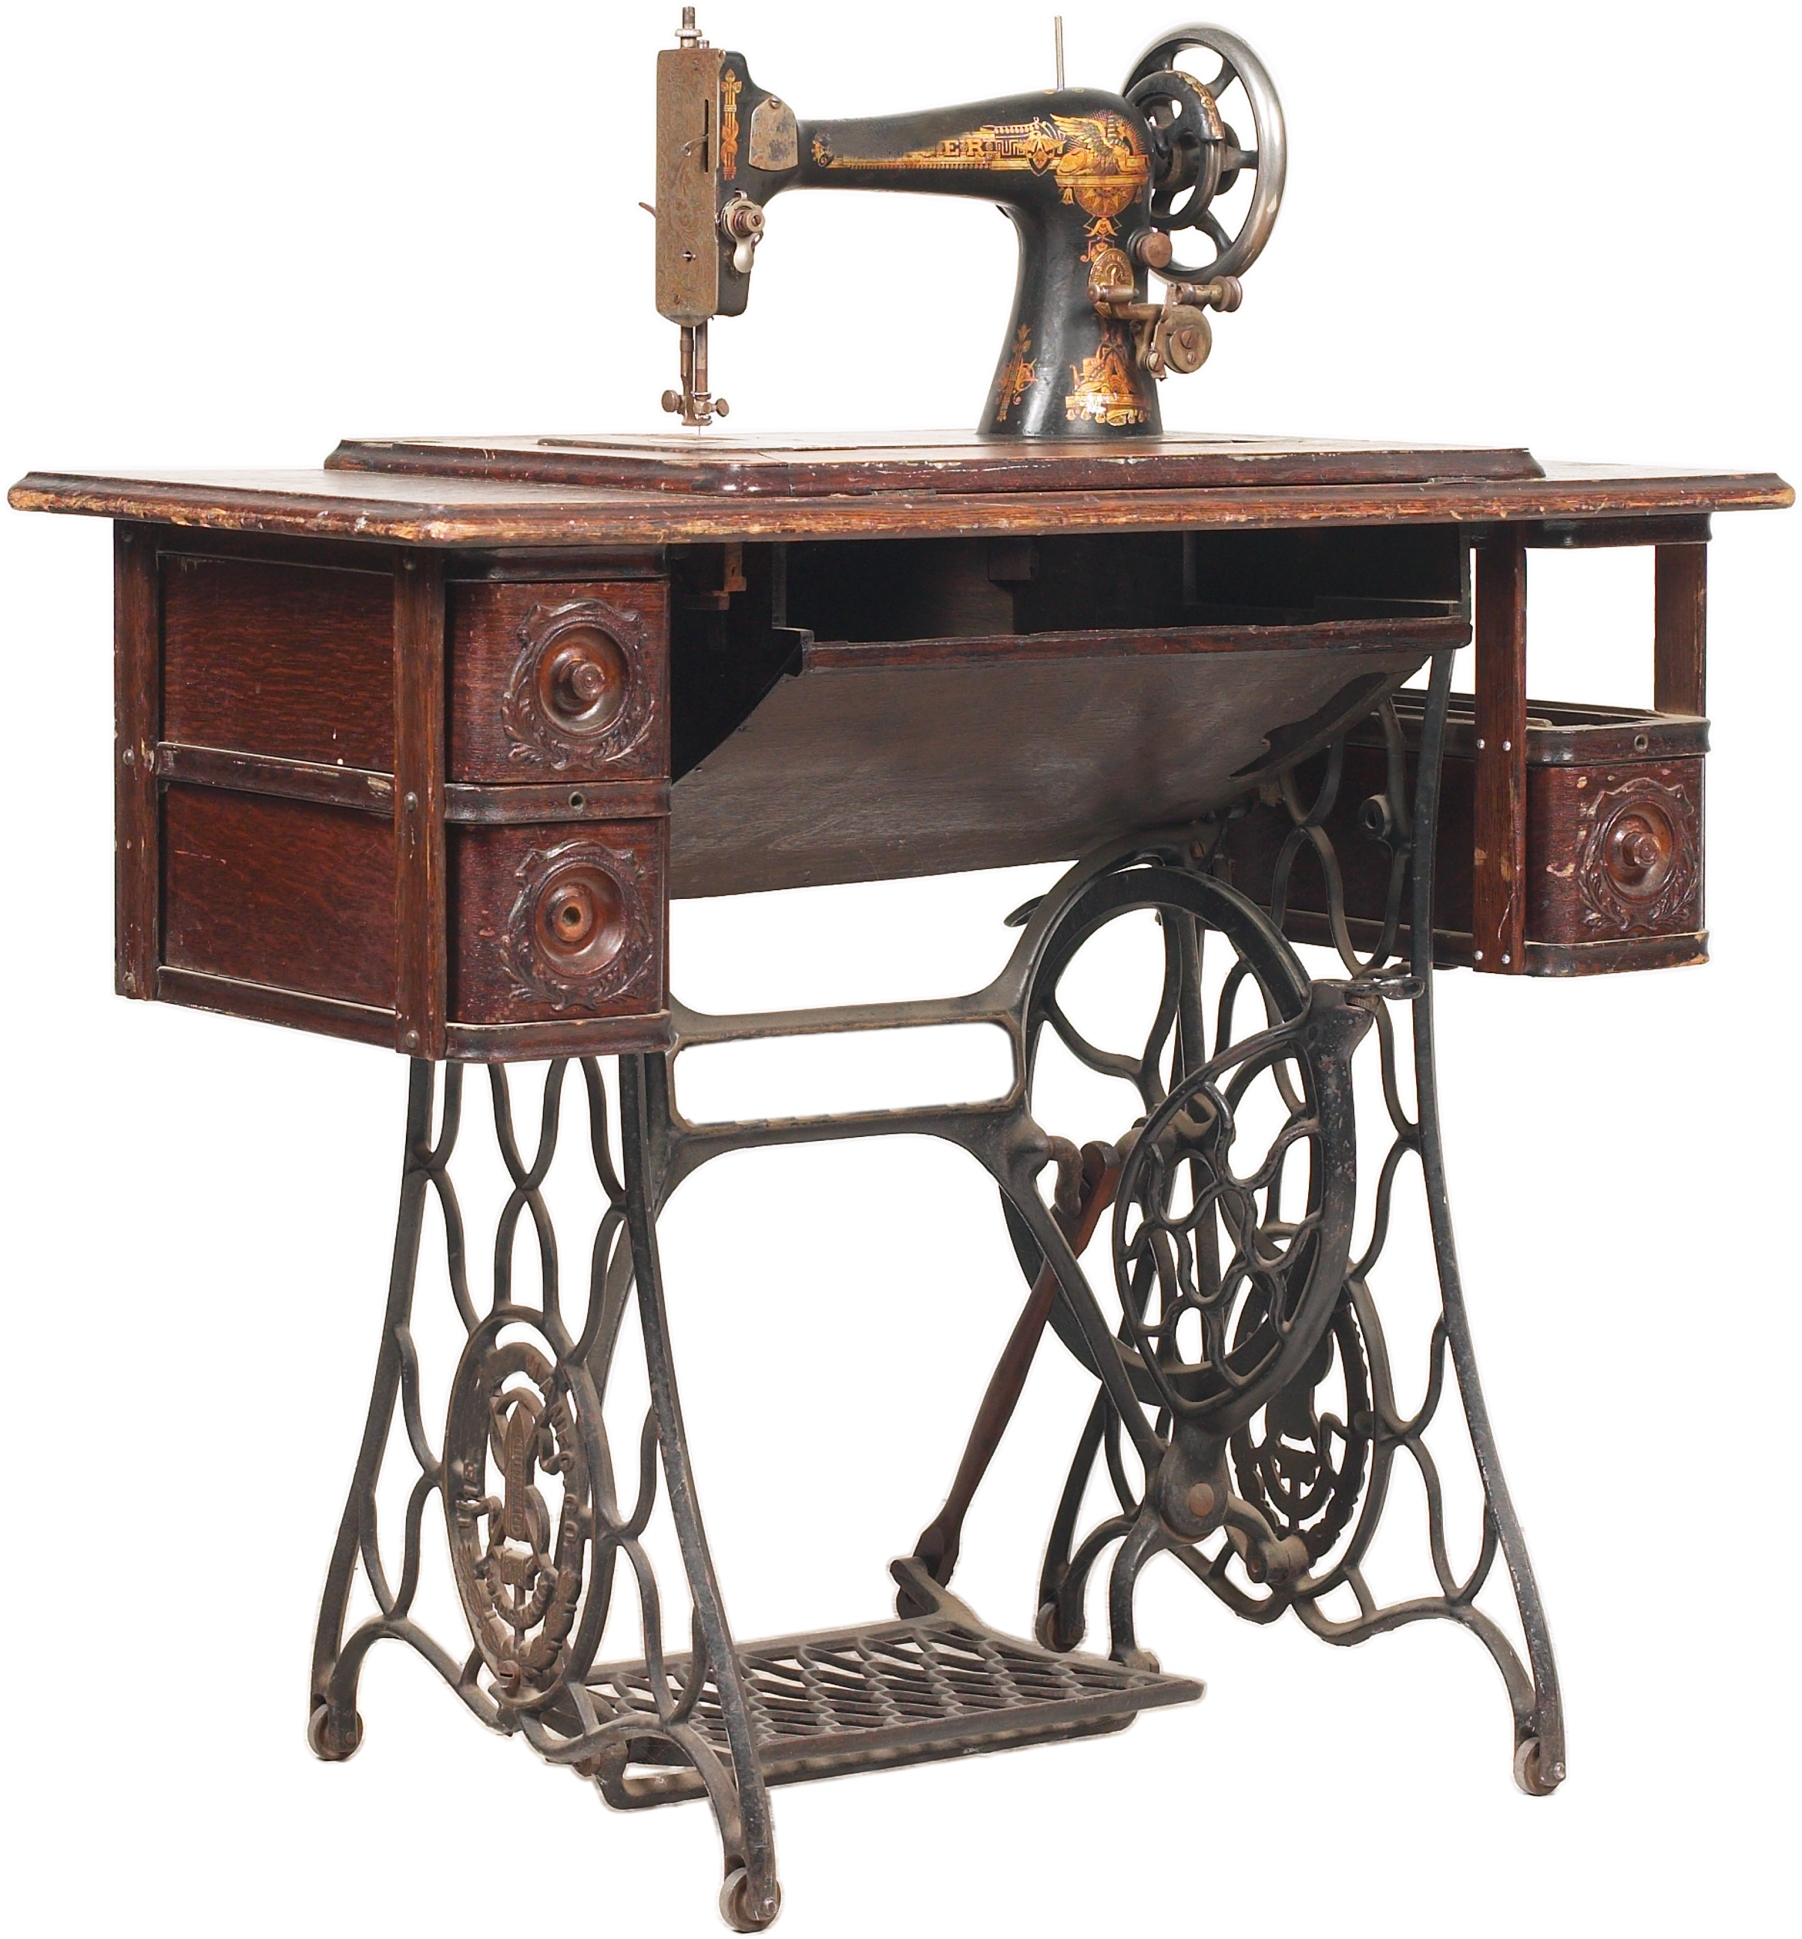 Value of Old Singer Sewing Machines | Our Pastimes